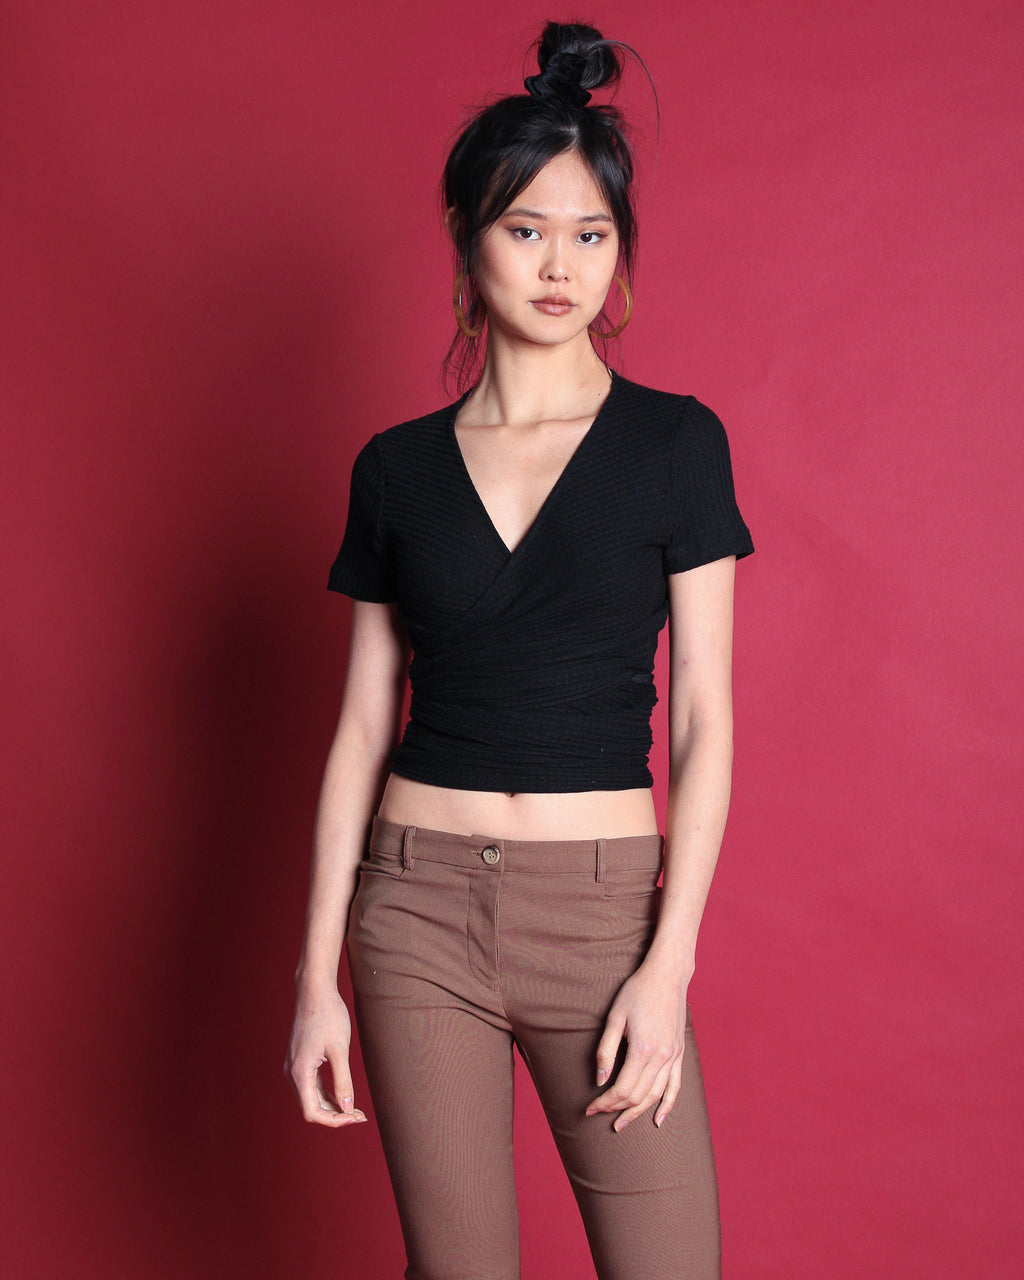 Urban Wrap Top Black (18206)